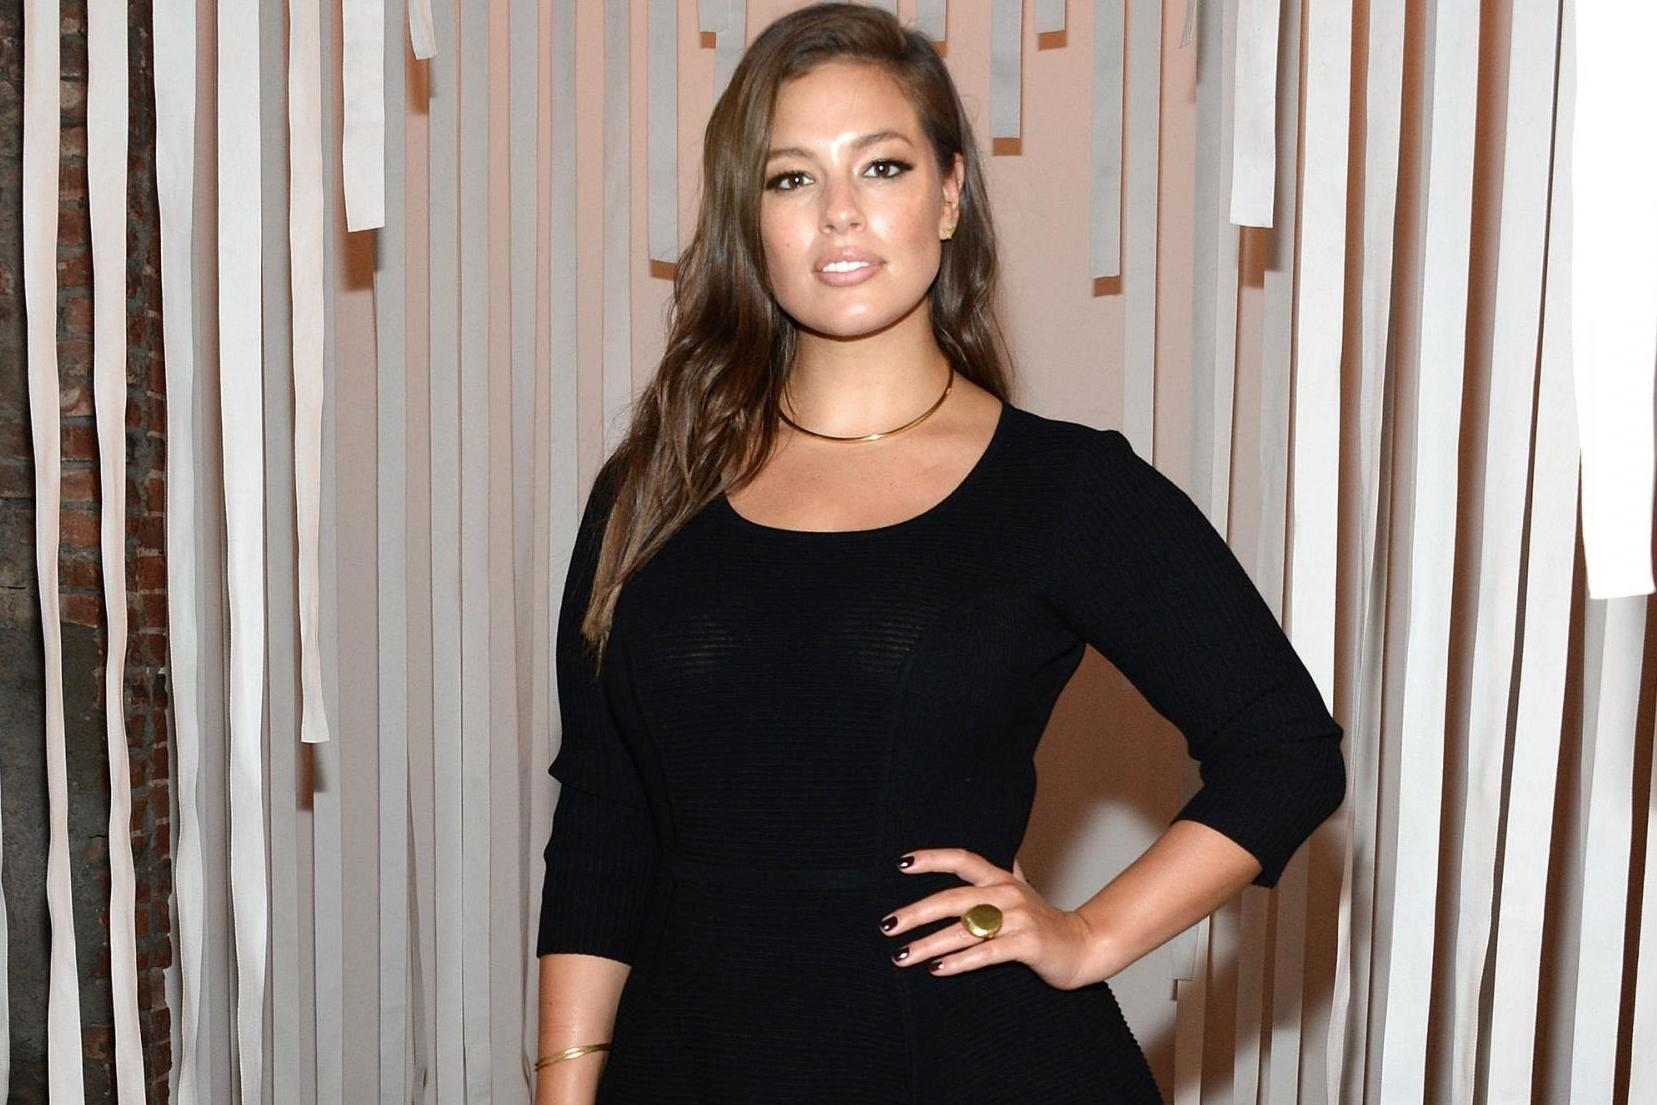 21 things you may not know about Ashley Graham | The ...